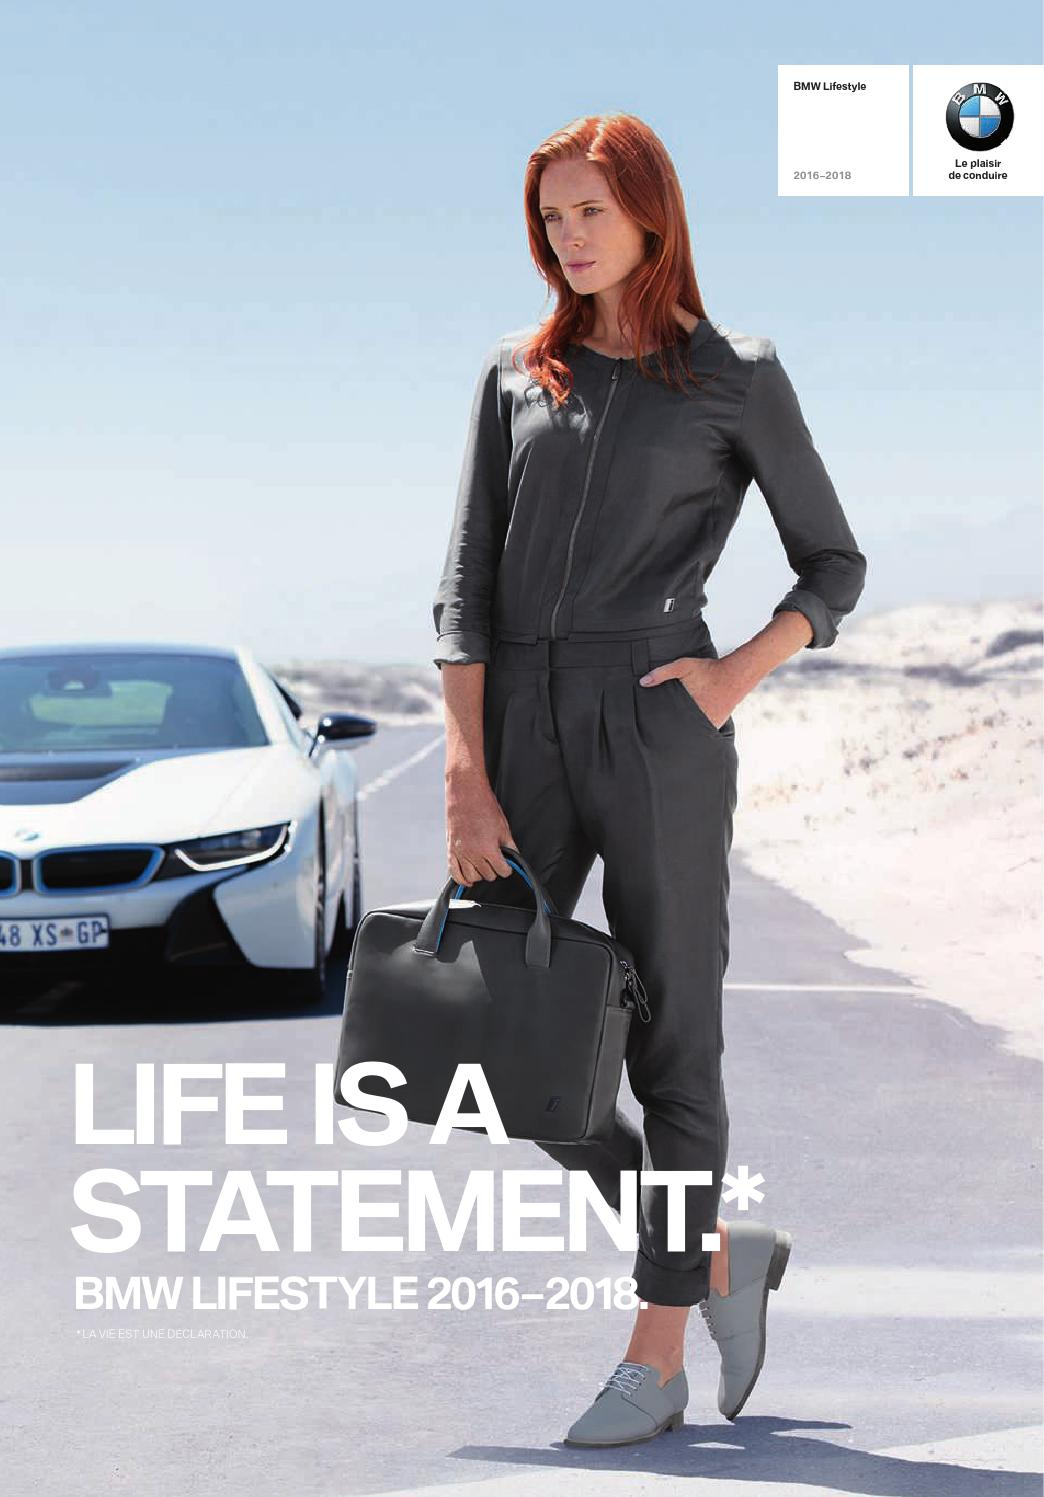 ab3ea7e4115a5 Nouveau ! BMW Lifestyle Main Collection. by BMW Group Belux - issuu